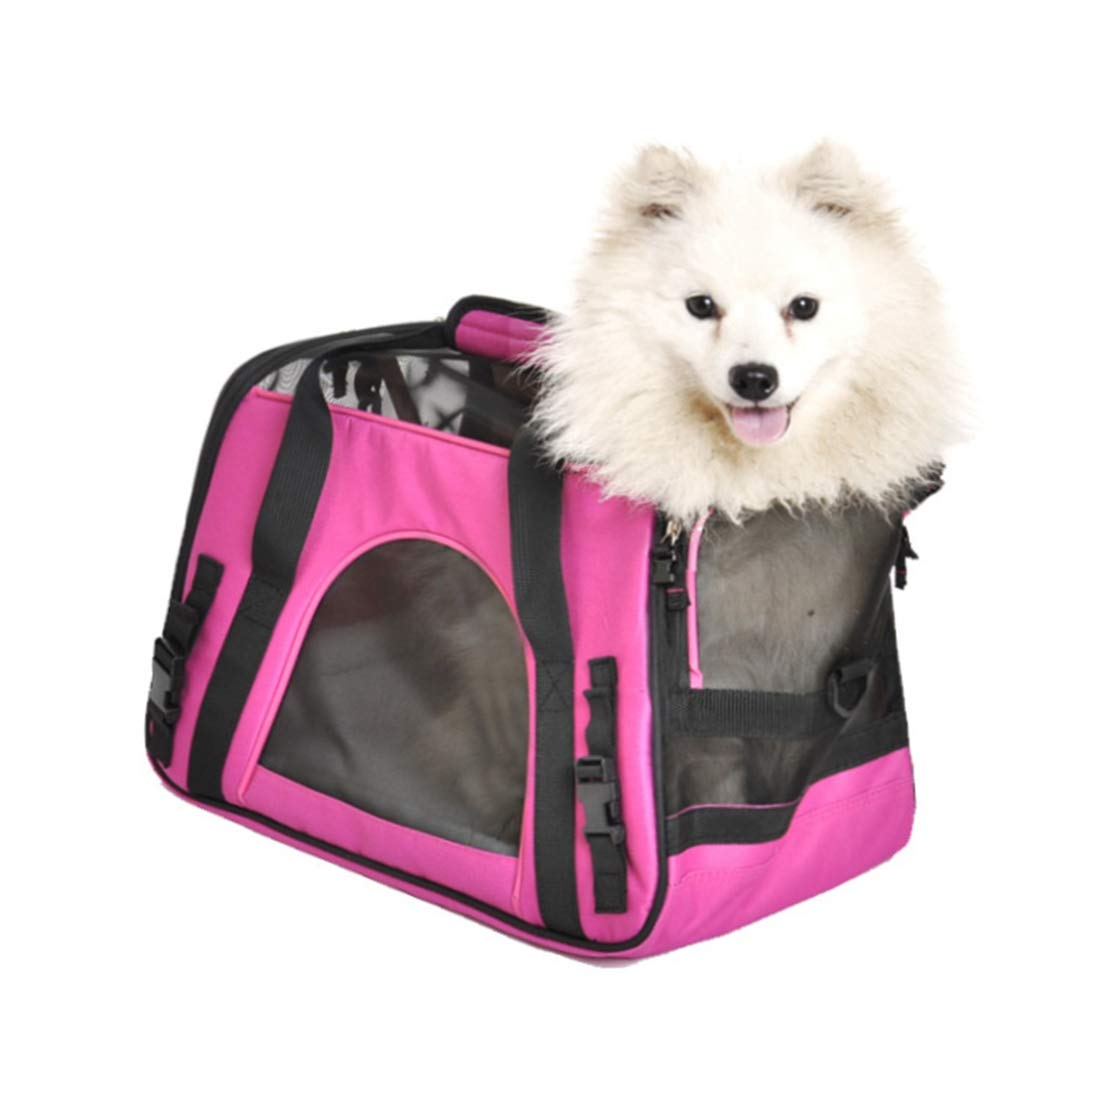 pink red FELICIPP Large Pet Carrier Tote Around Town Pet Carrier Portable Dog Handbag Dog Purse For Outdoor Travel Walking Hiking (color   pink red)